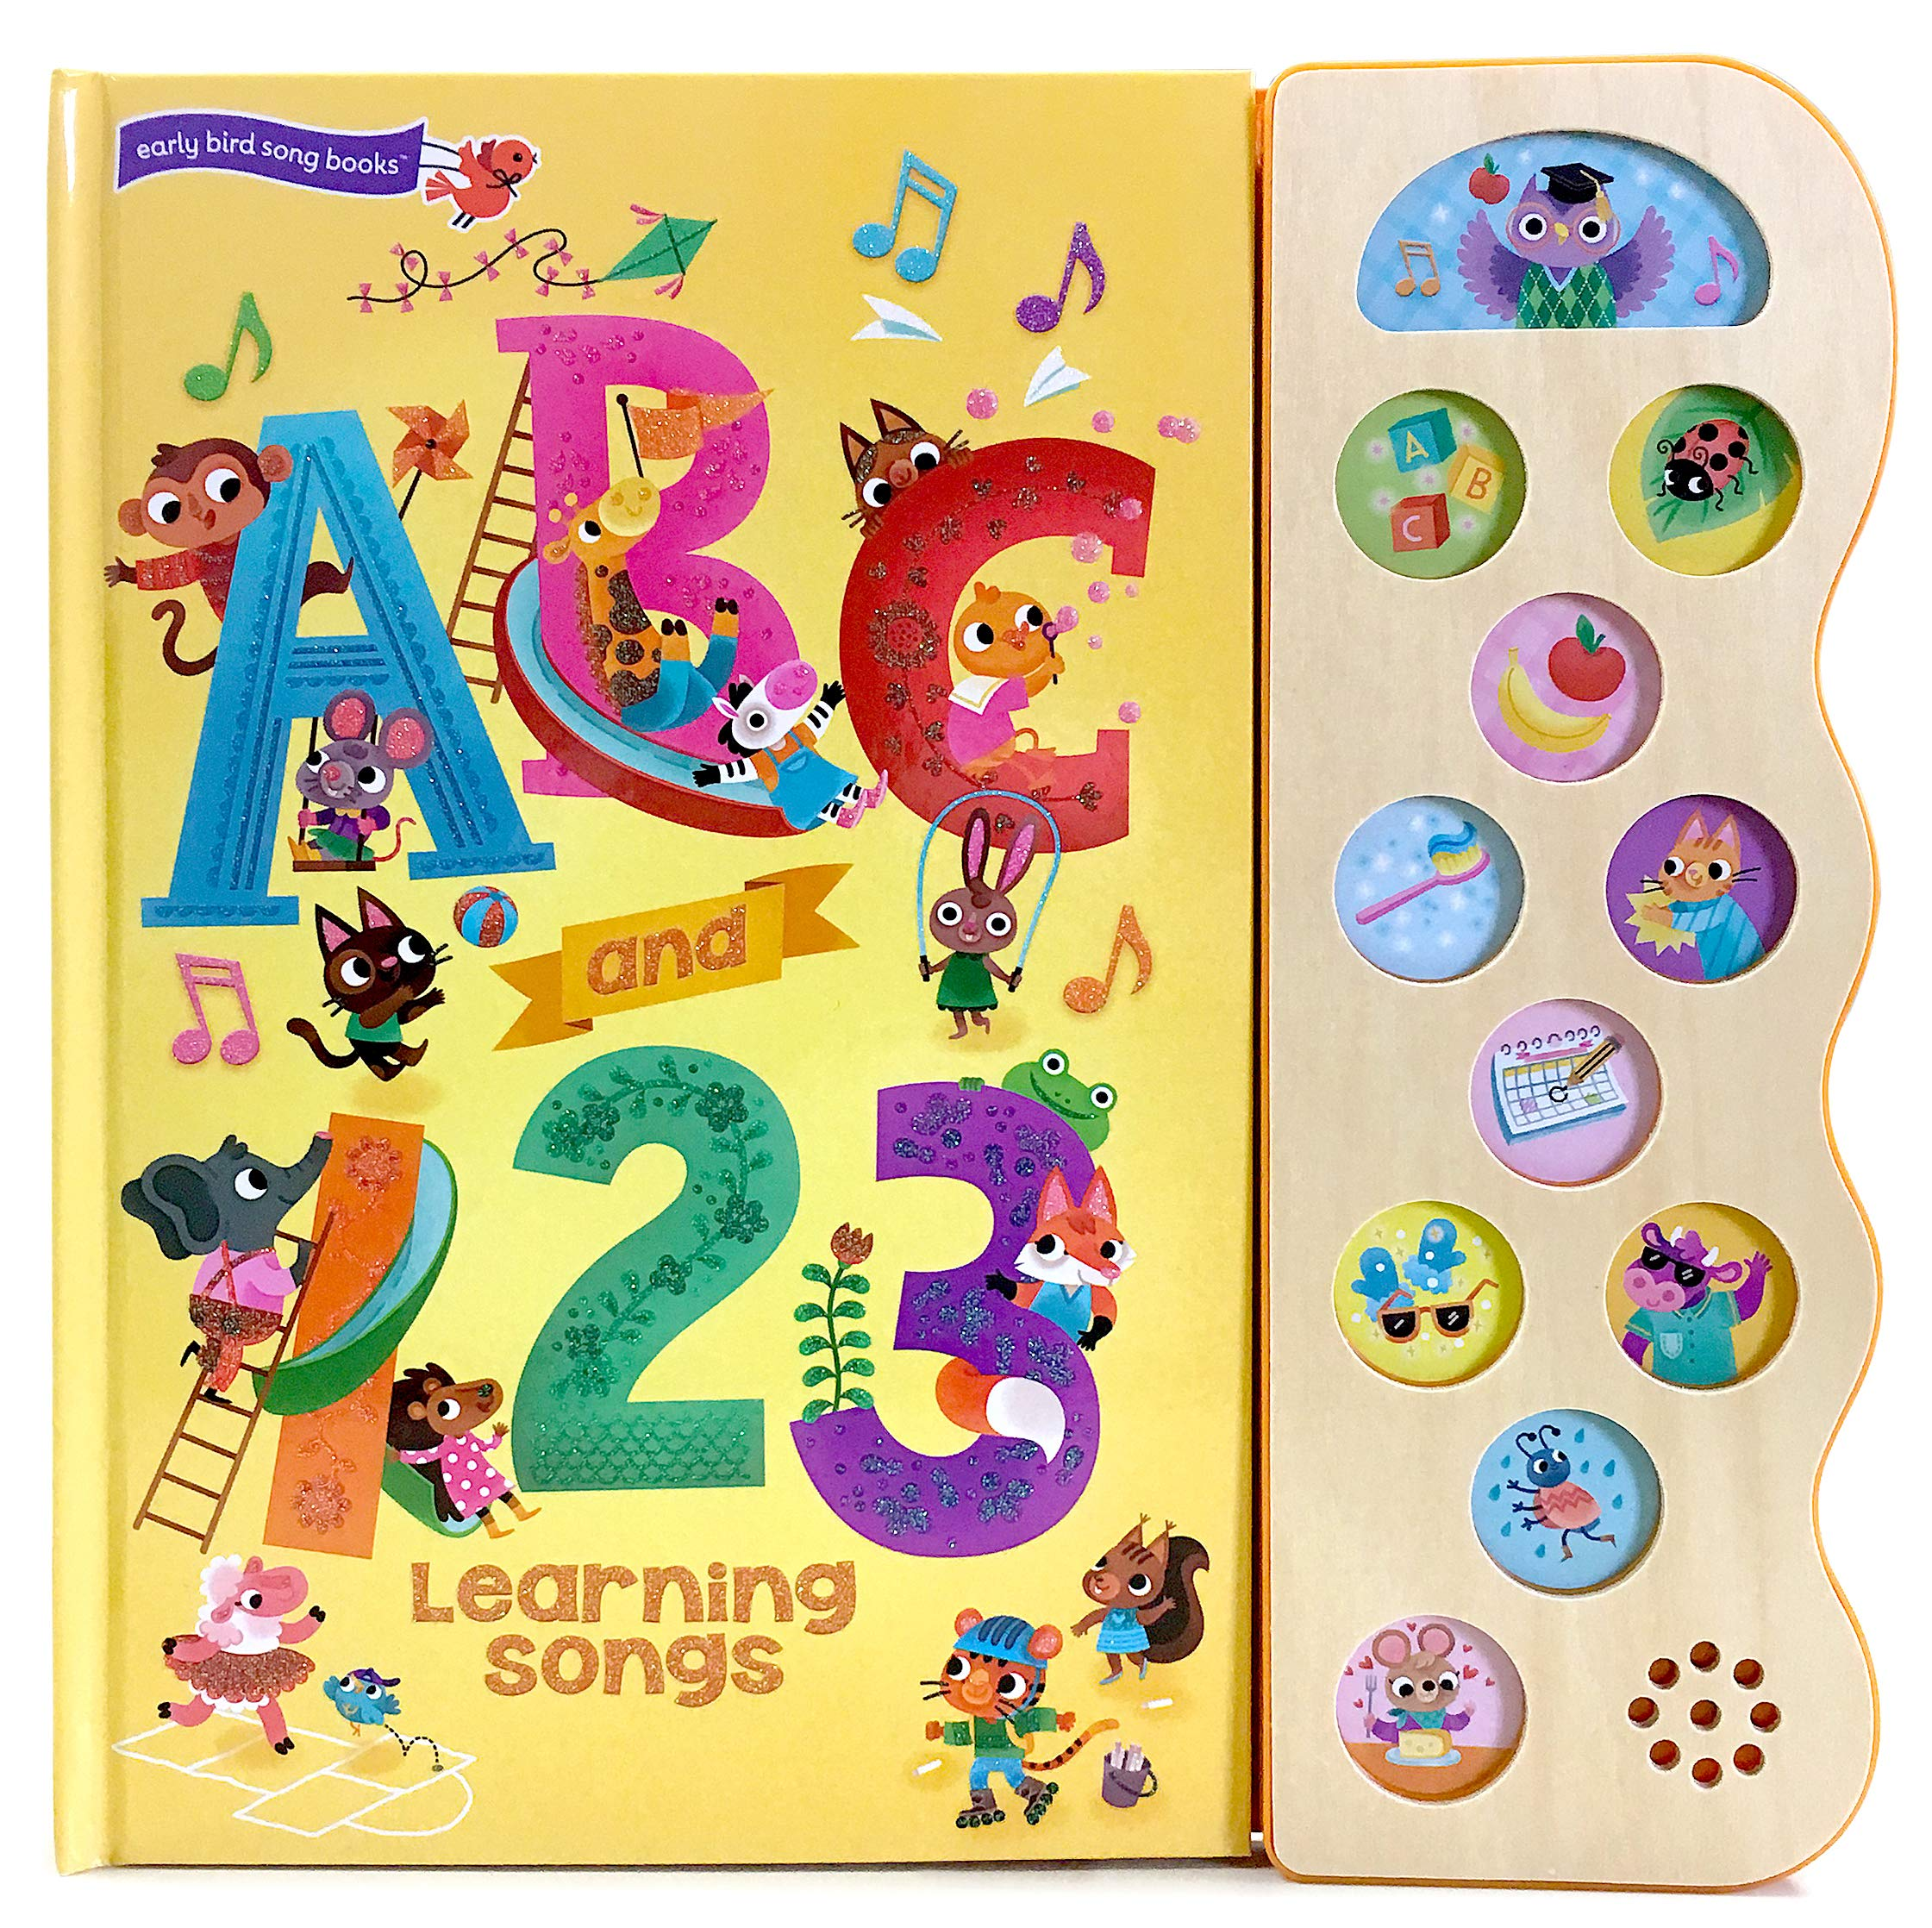 Amazon com: ABC & 123 Learning Songs: Interactive Children's Sound